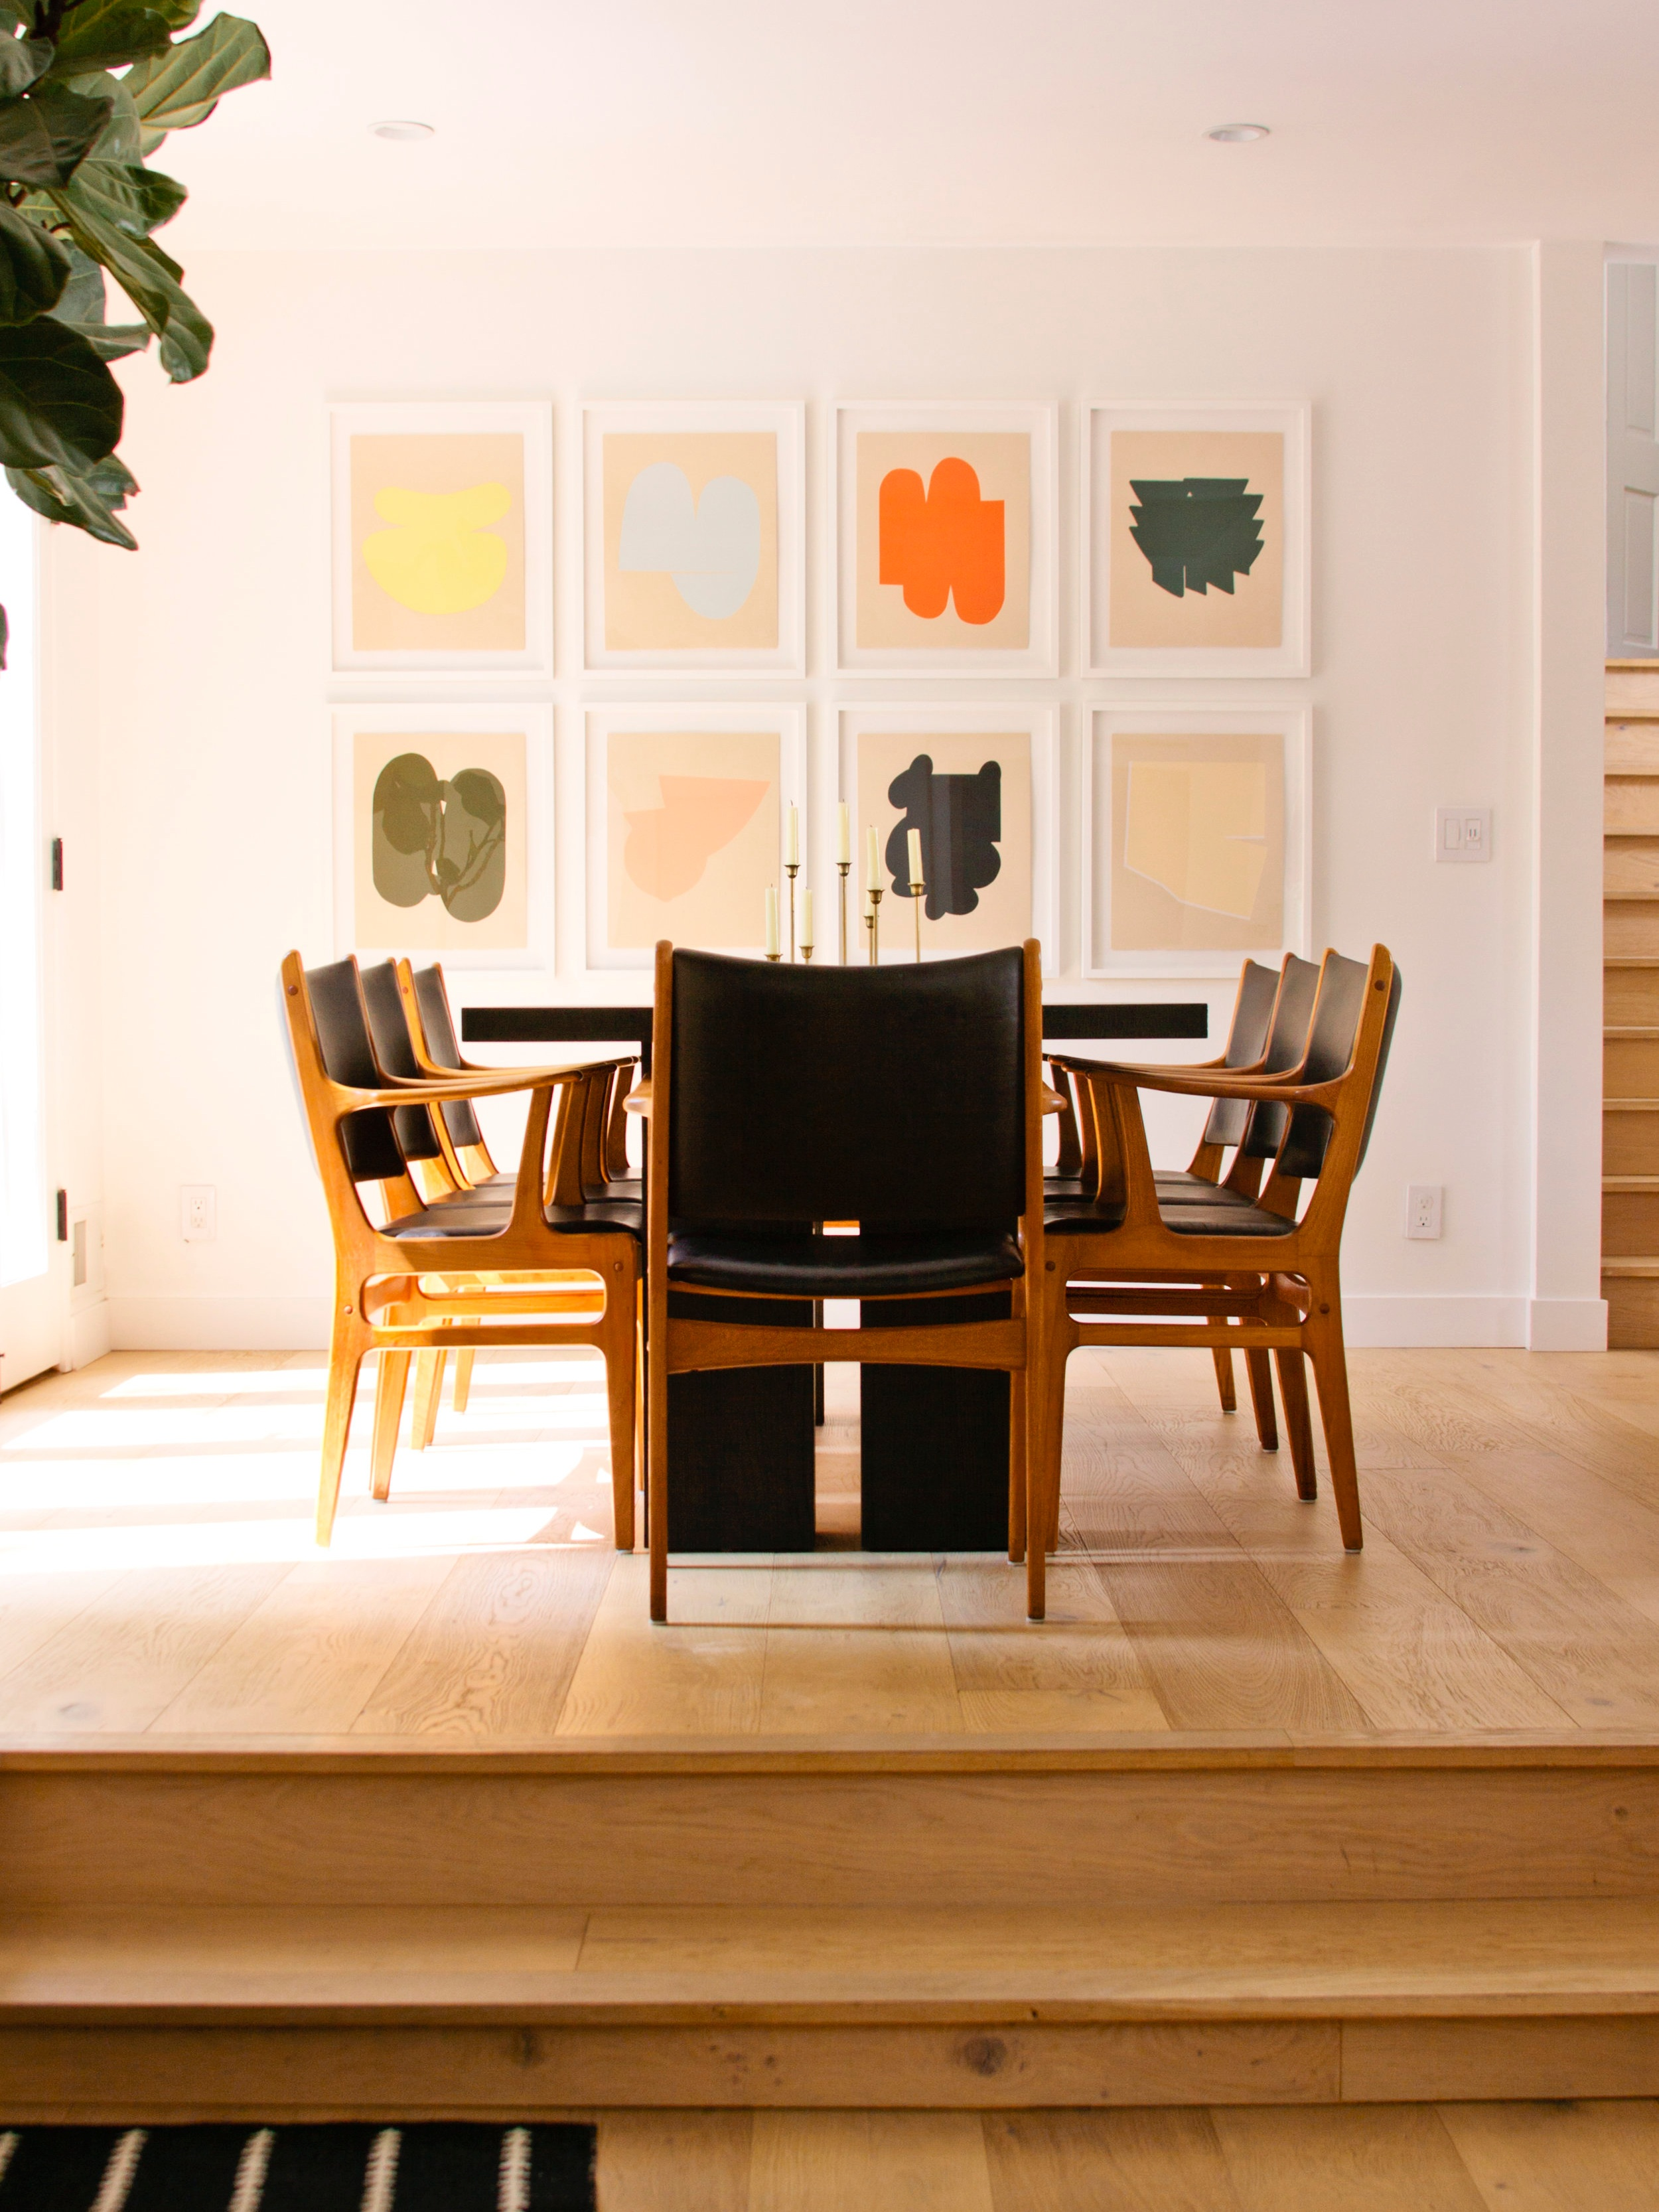 Alyson Fox prints installed in a private residence in Los Angeles.